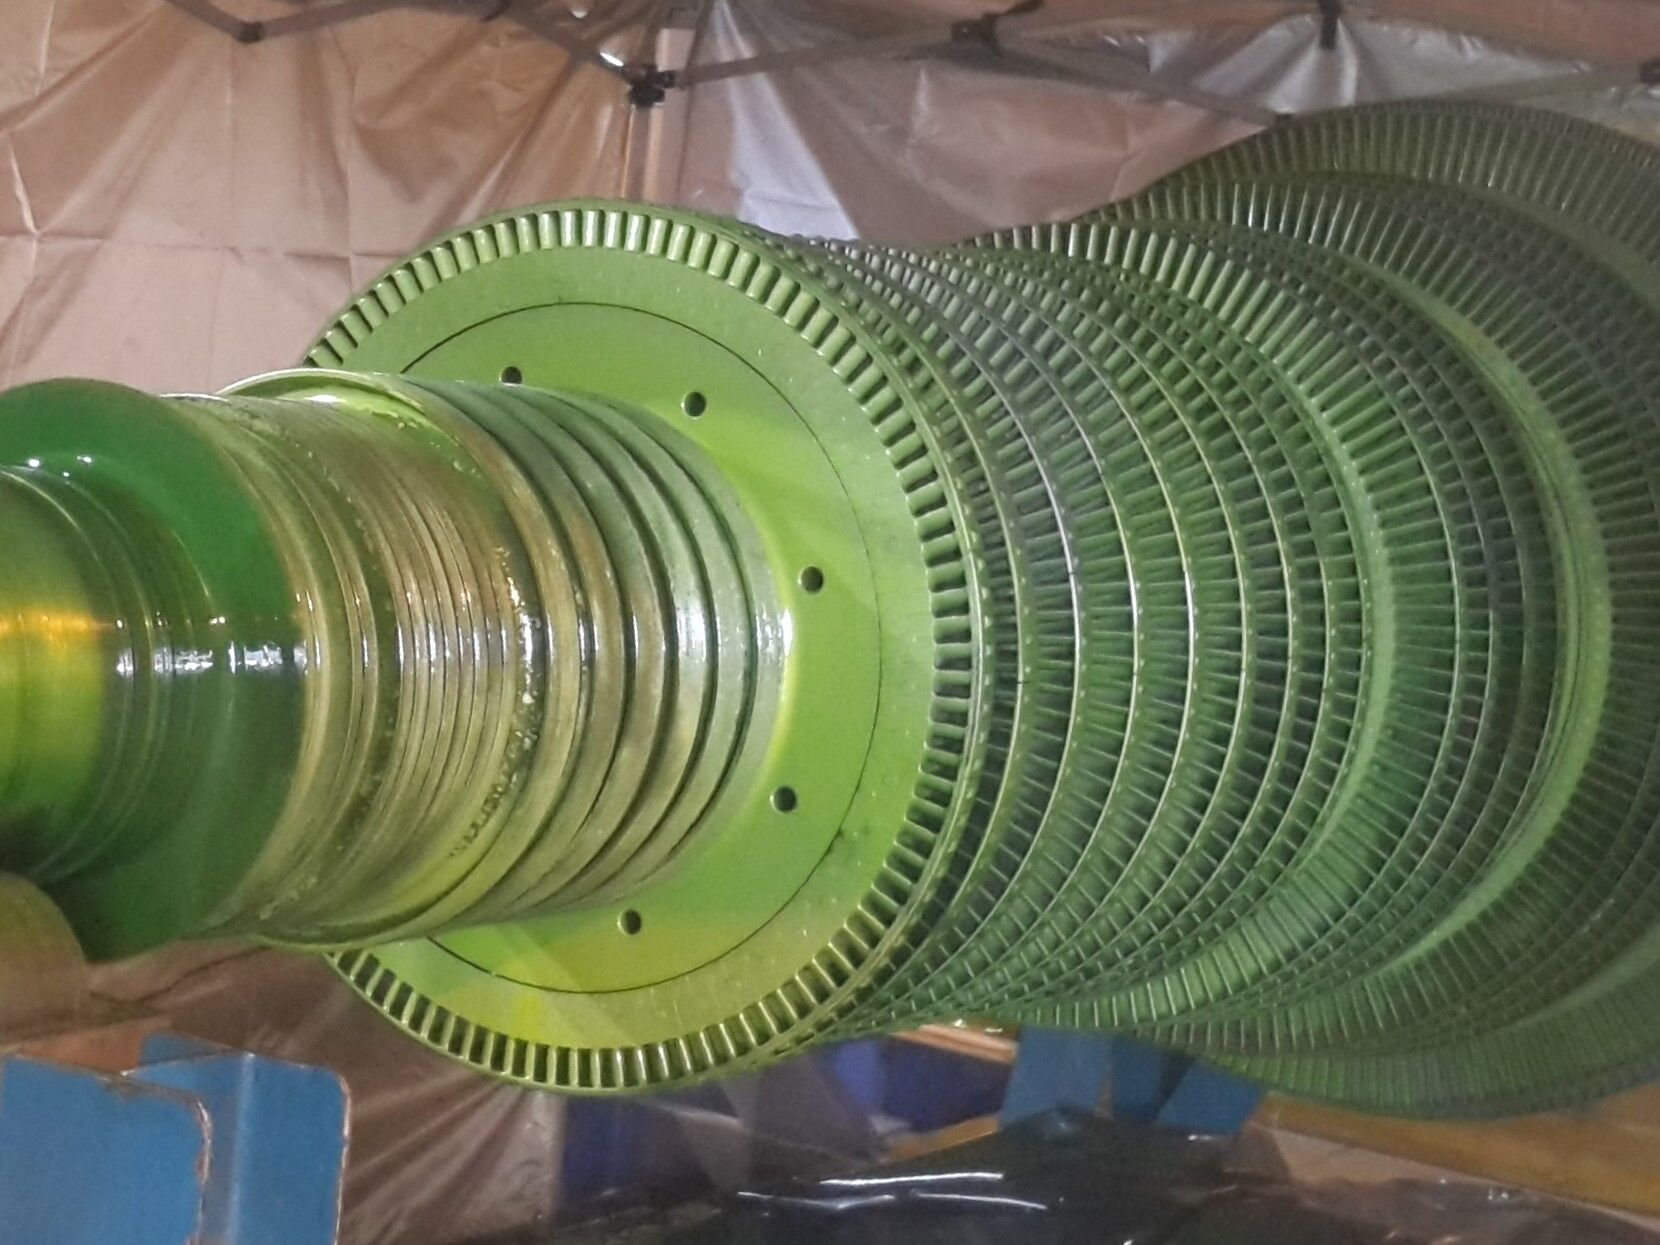 NDT inspection turbine rotor